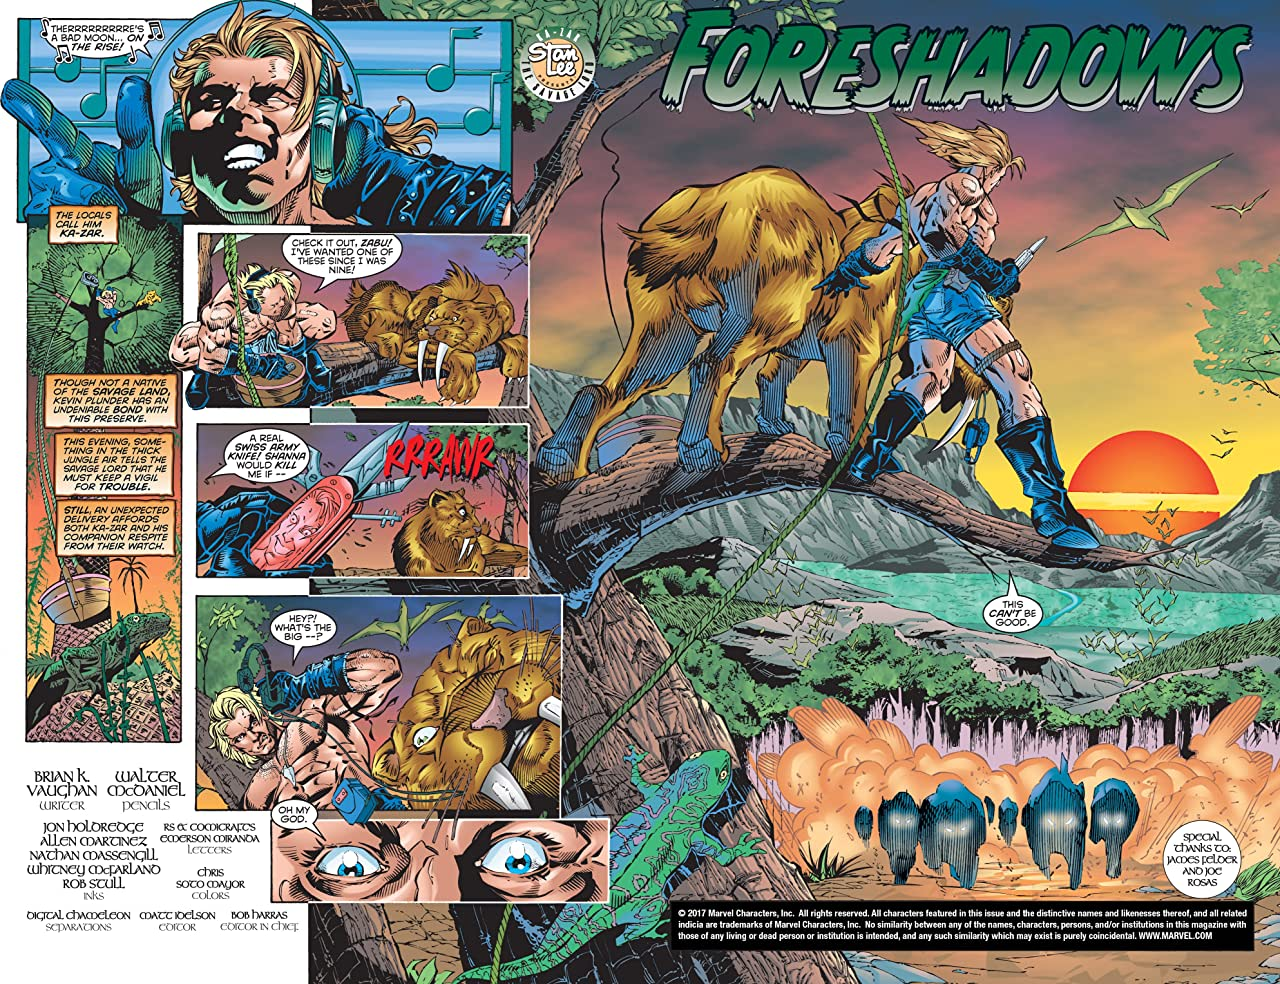 Ka-Zar by Mark Waid and Andy Kubert Vol. 2